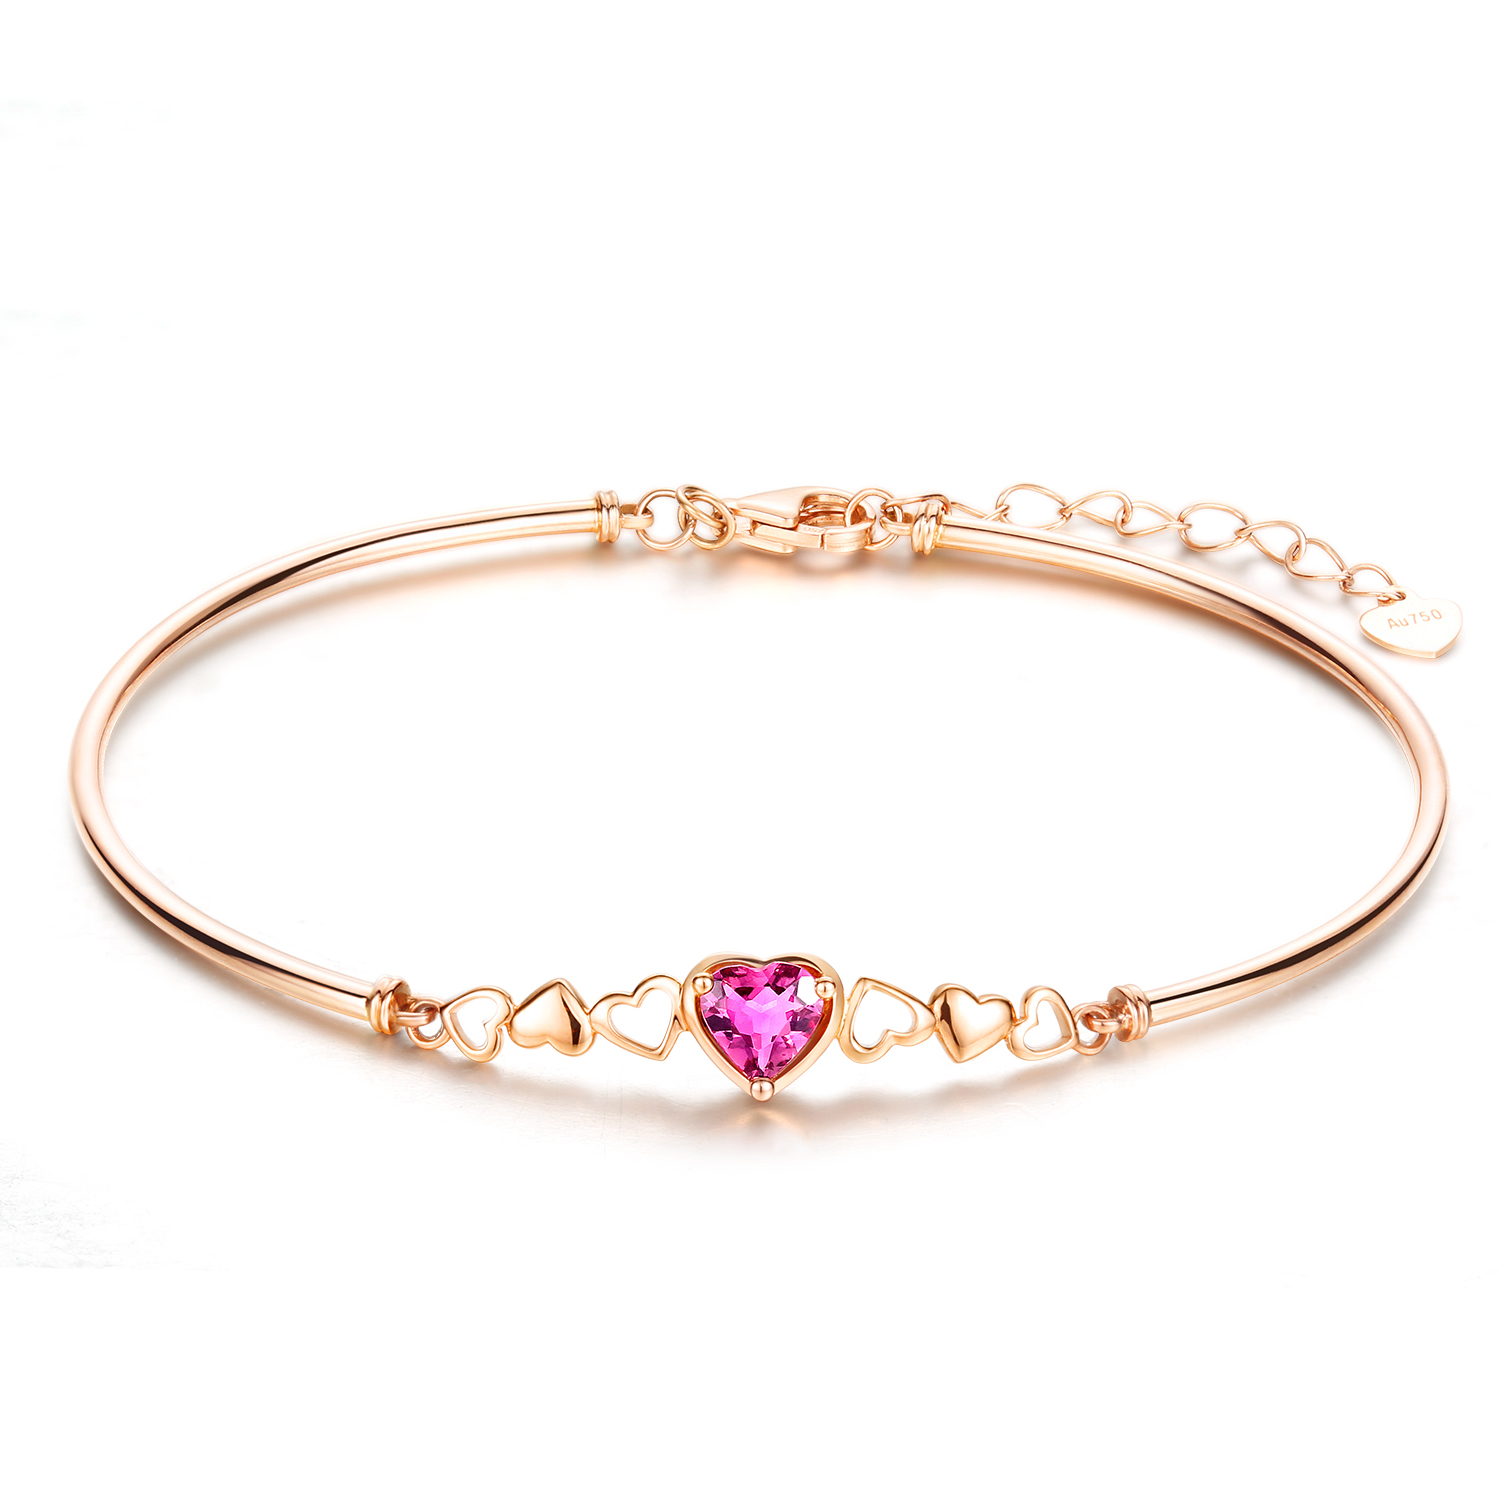 Carleen Tourmaline Pendant Bangle 18K Rose Gold Bracelet for Women by Carleen